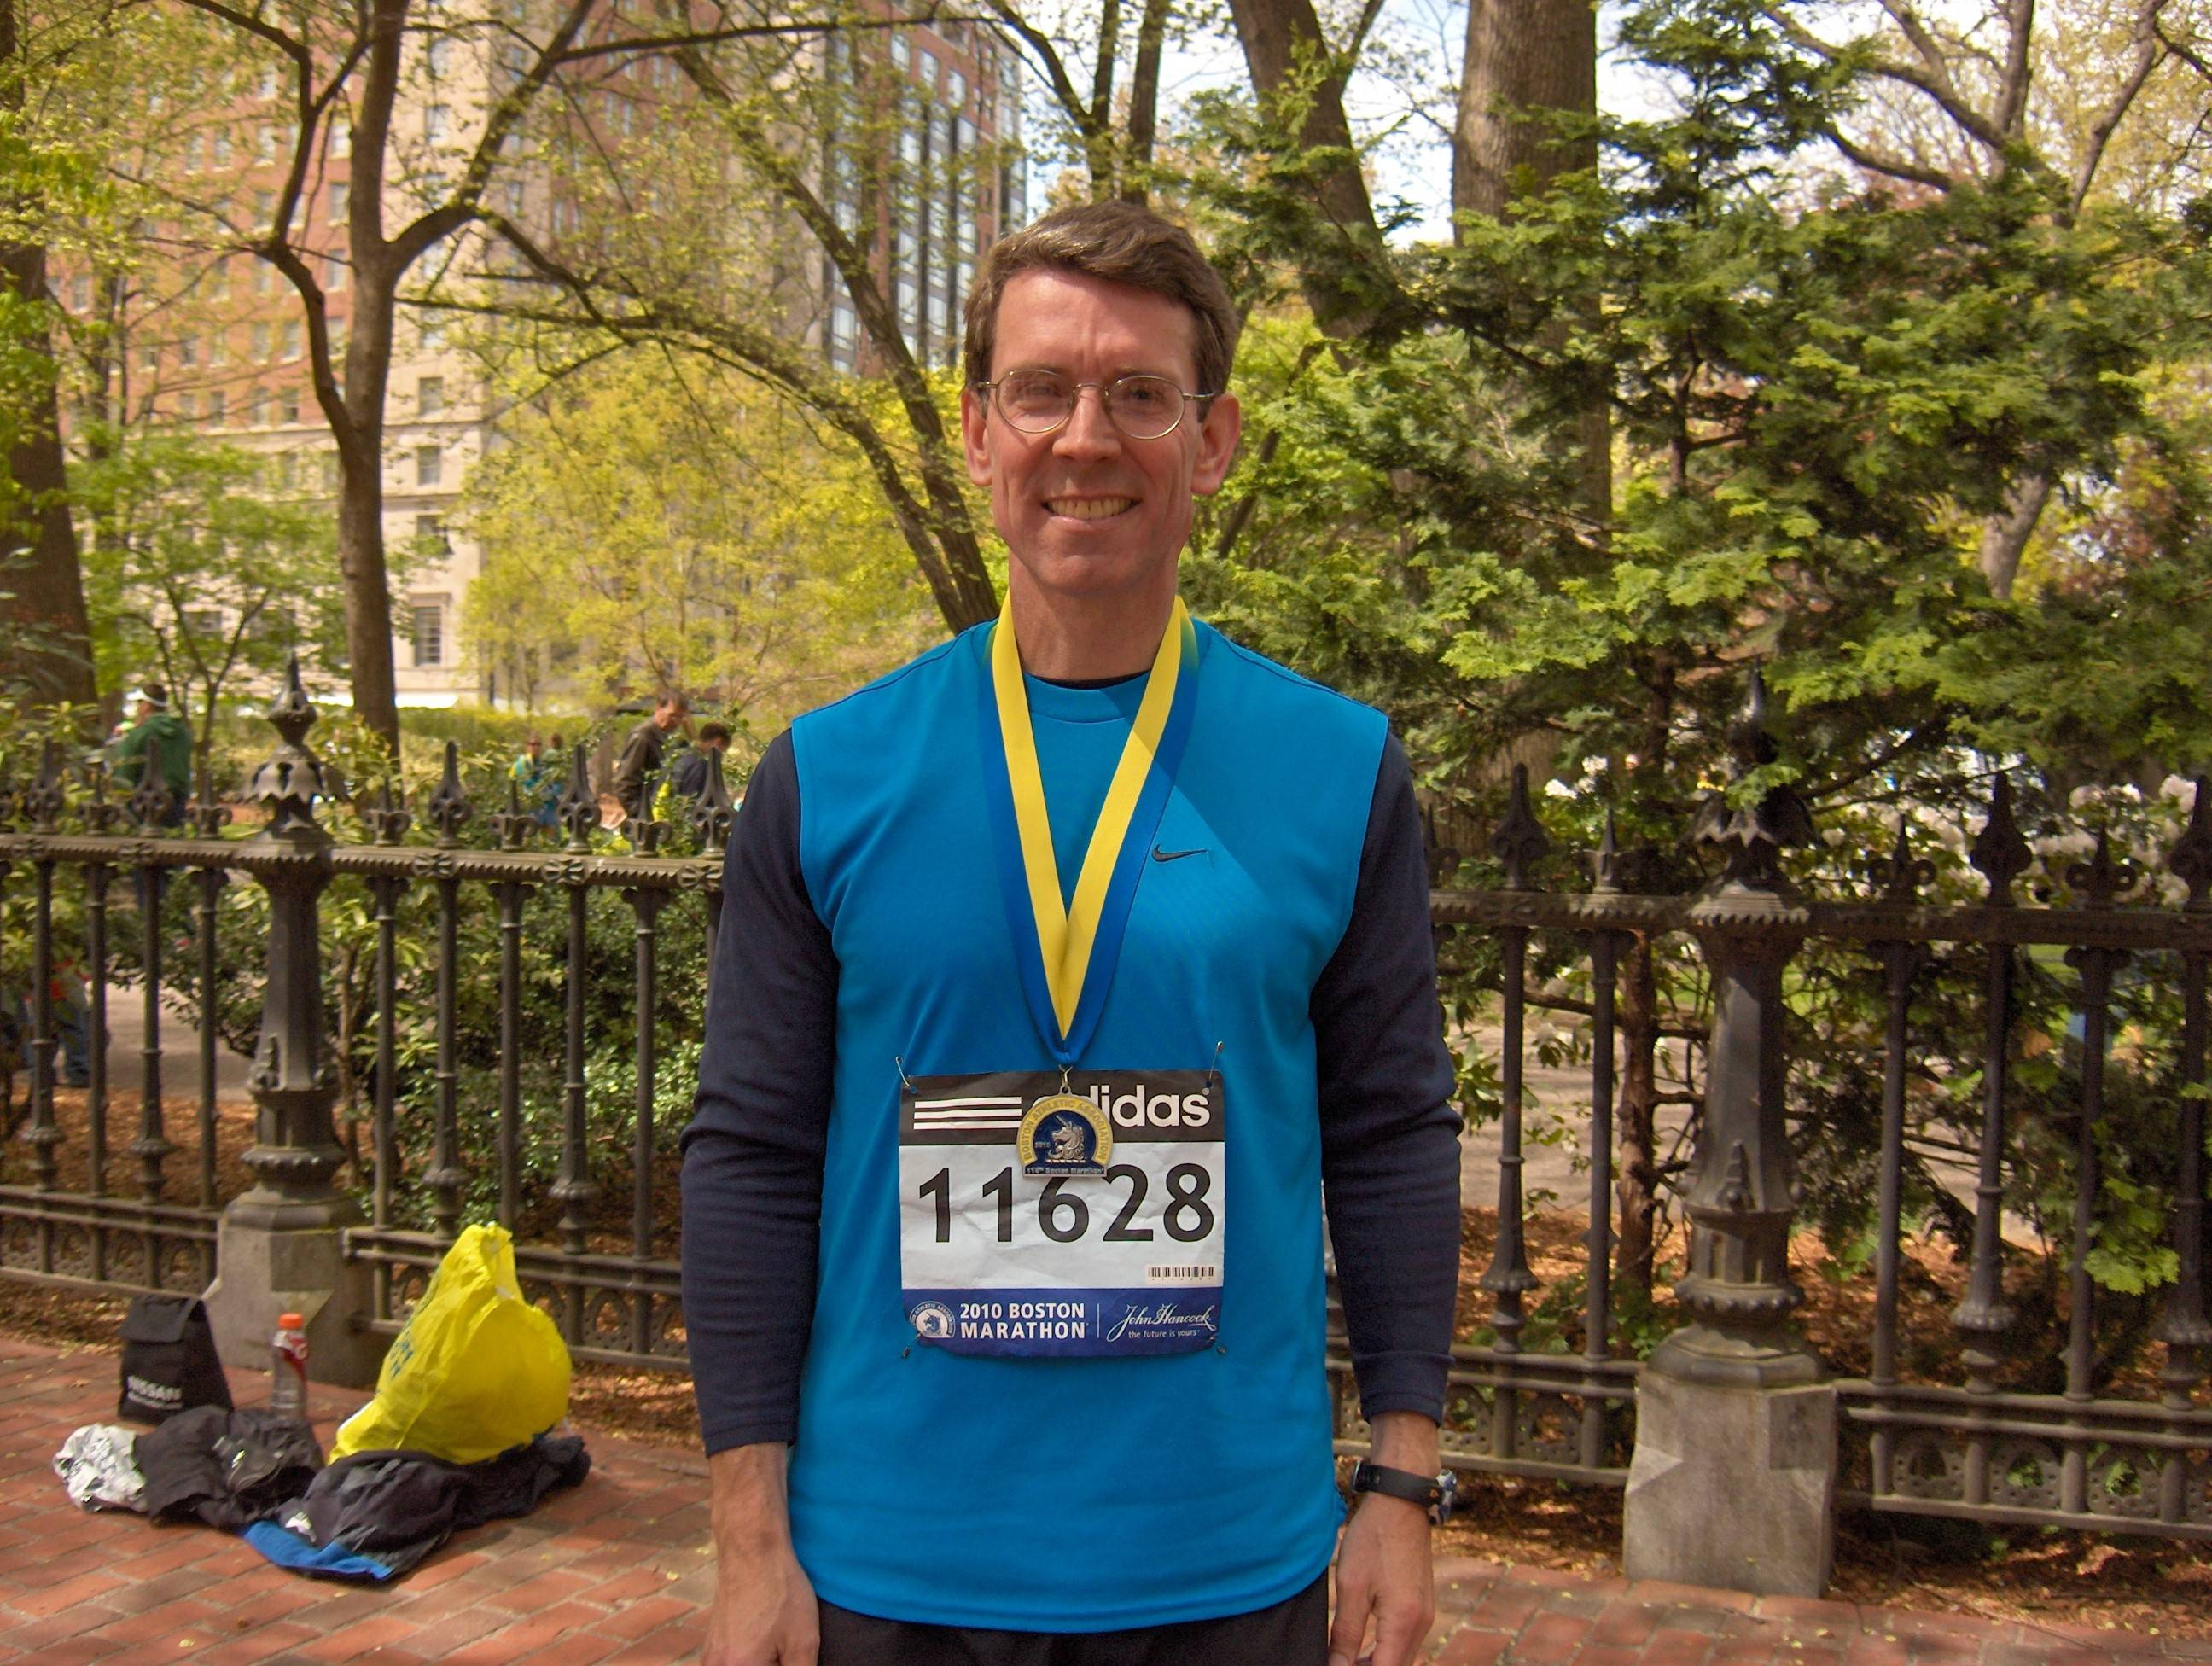 Arlington Heights Mayor Tom Hayes, shown after running the Boston Marathon in 2010, also ran the marathon during the bombing last year. He'll return to Boston for the marathon Monday.